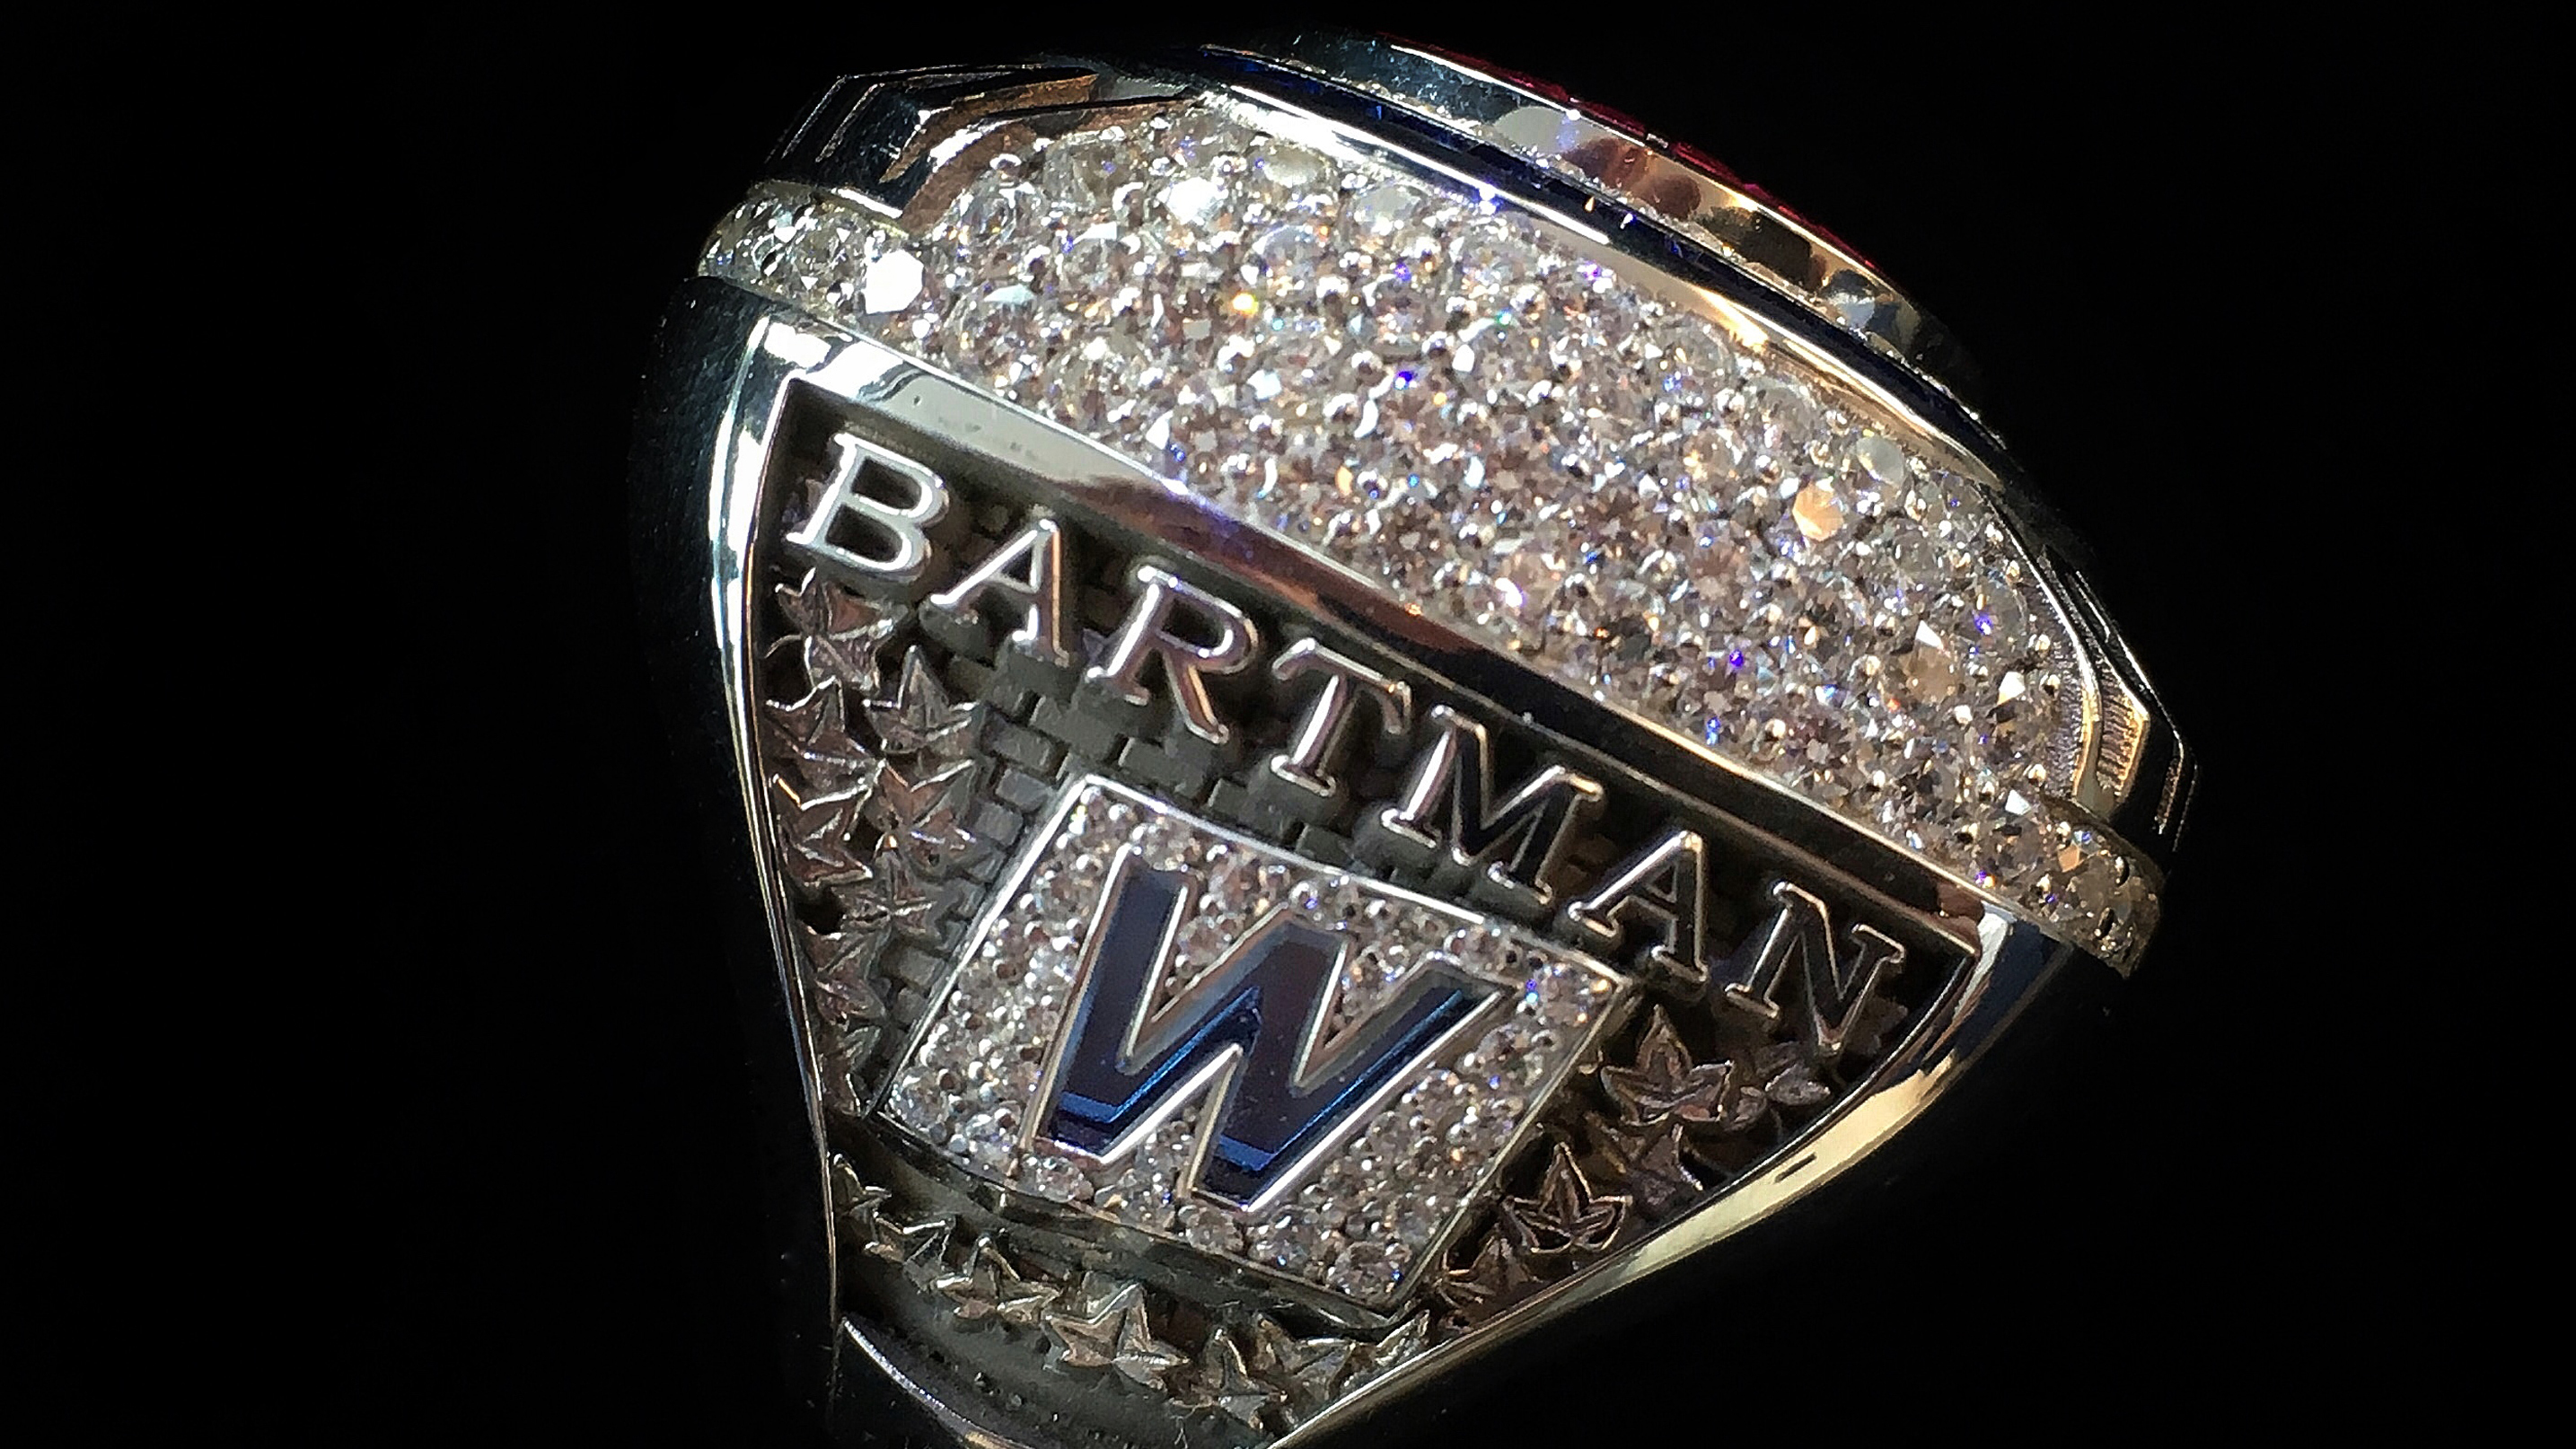 On Monday the Chicago Cubs gave a 2016 World Series championship ring to Steve Bartman, a fan blamed for a team loss in 2003.